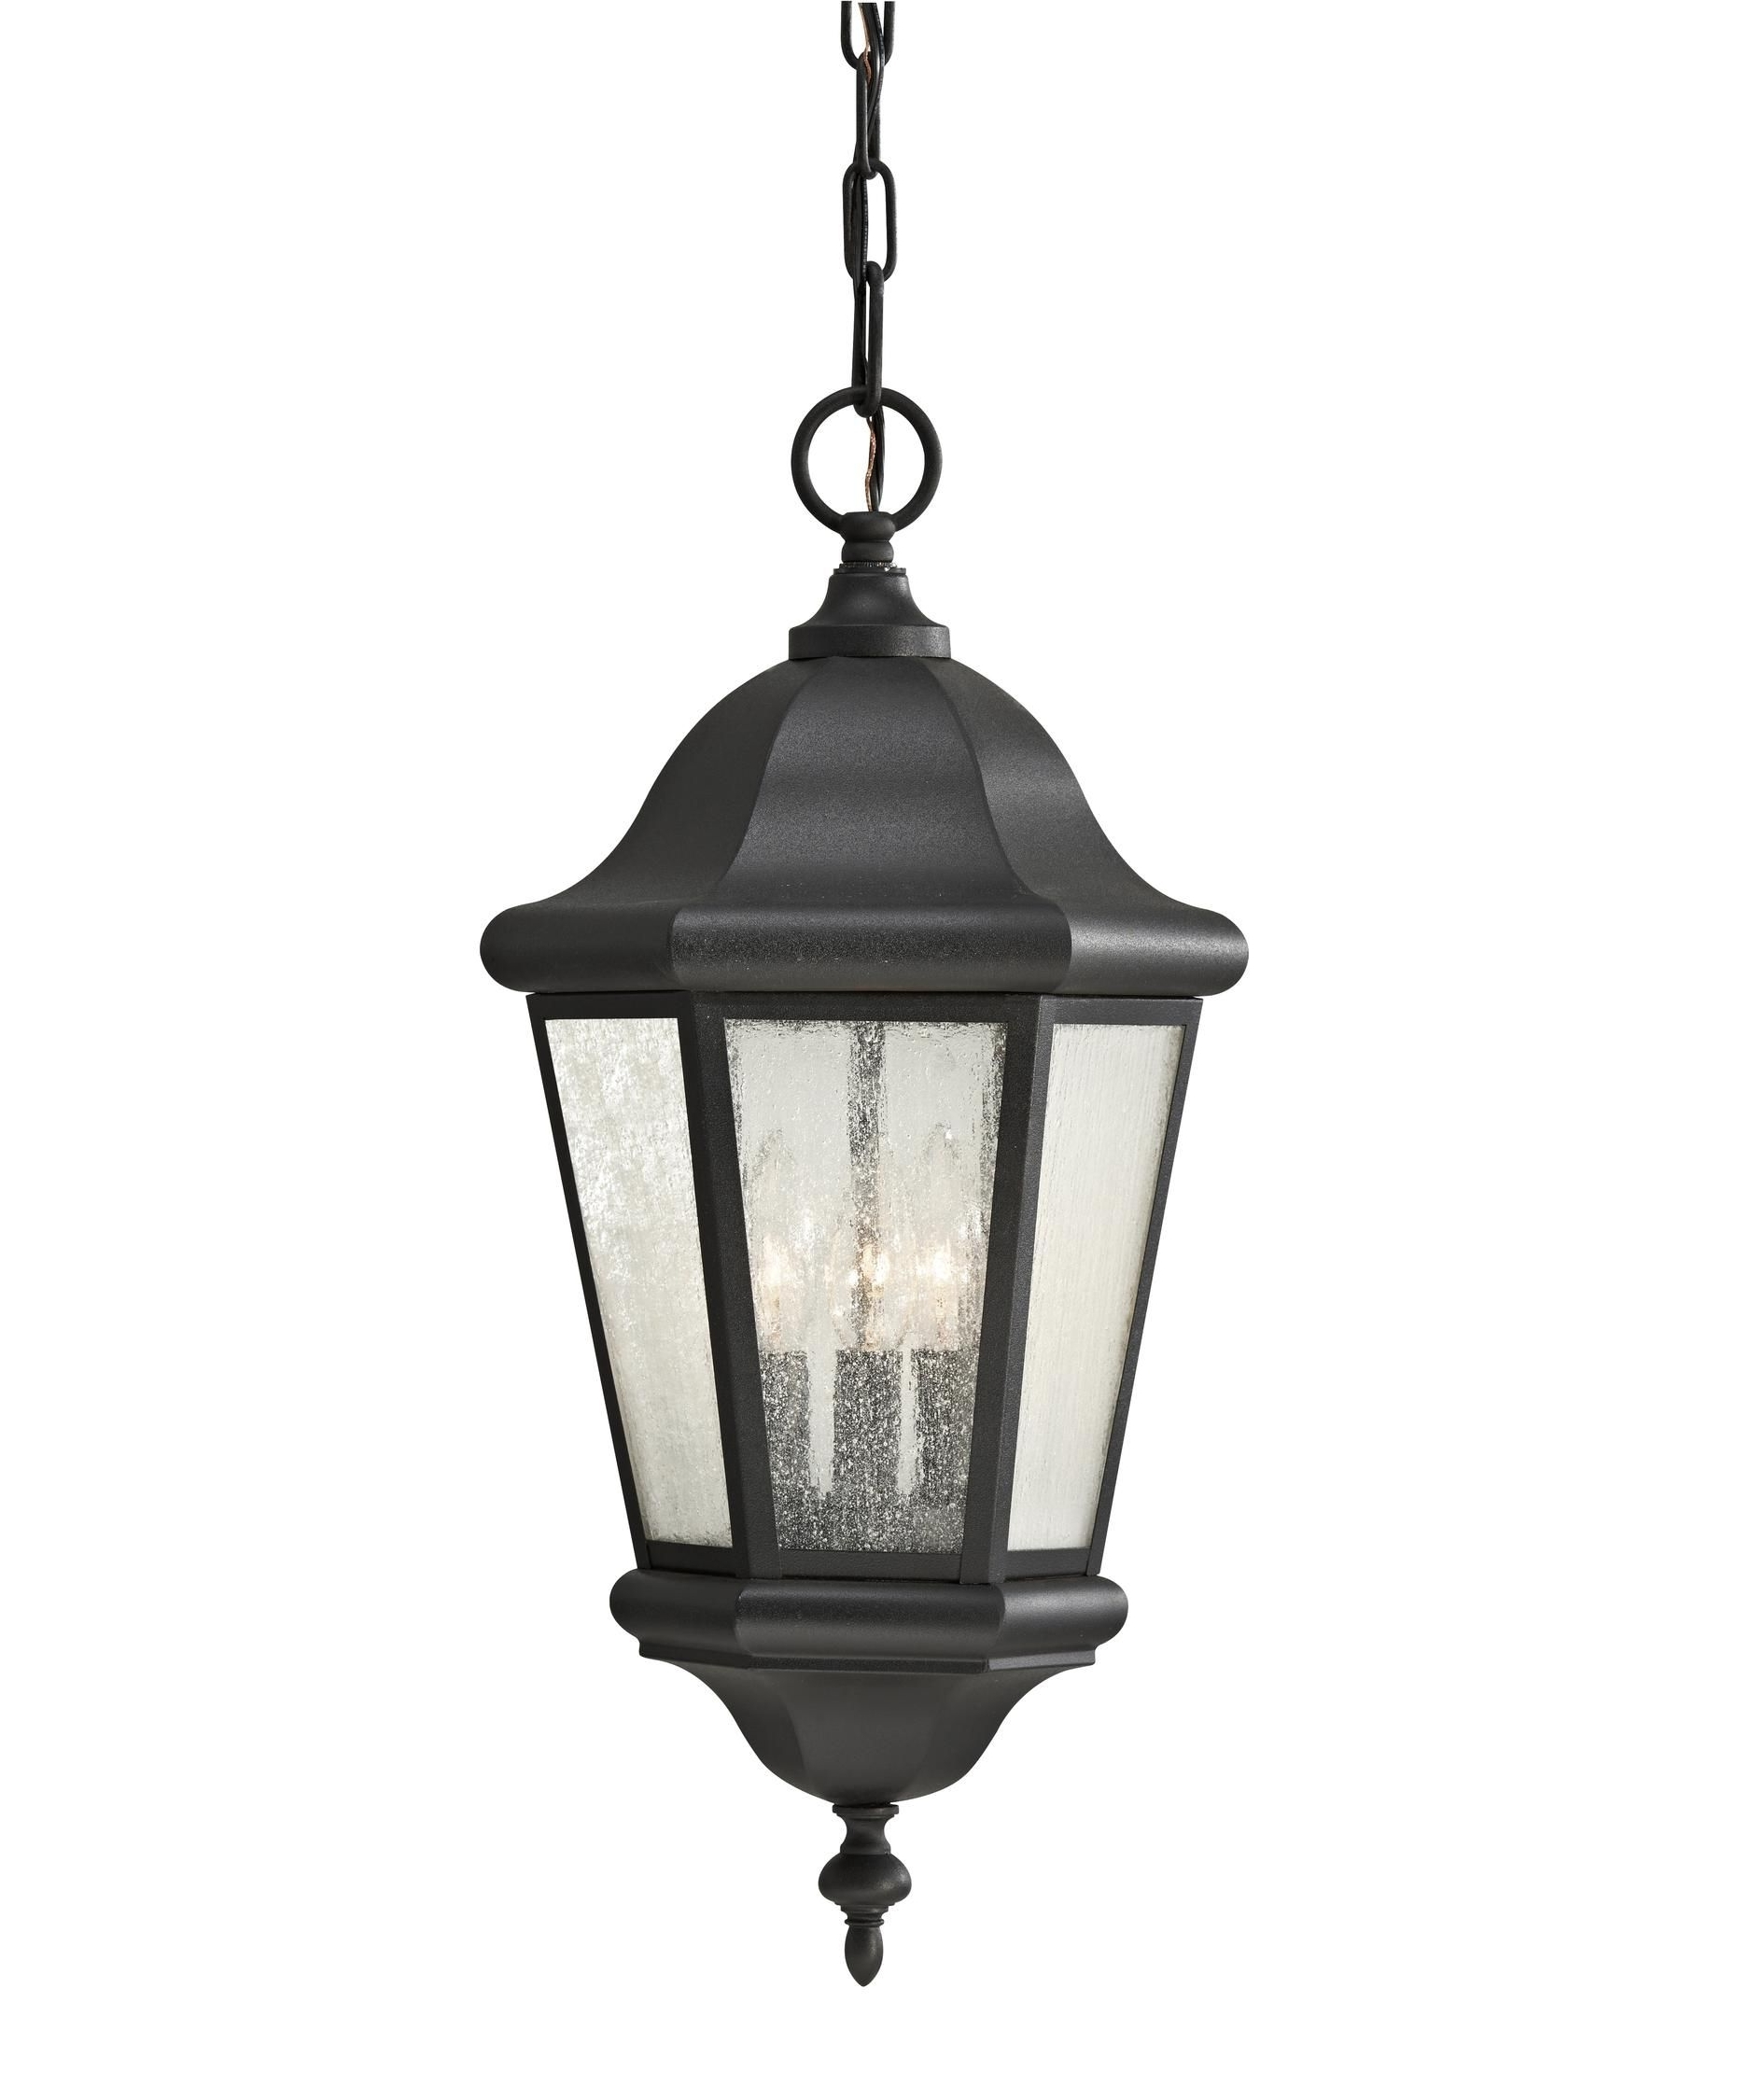 Murray Feiss Ol5911 Martinsville 3 Light Outdoor Hanging Lantern For 2018 Outdoor Hanging Light Fixtures In Black (View 16 of 20)